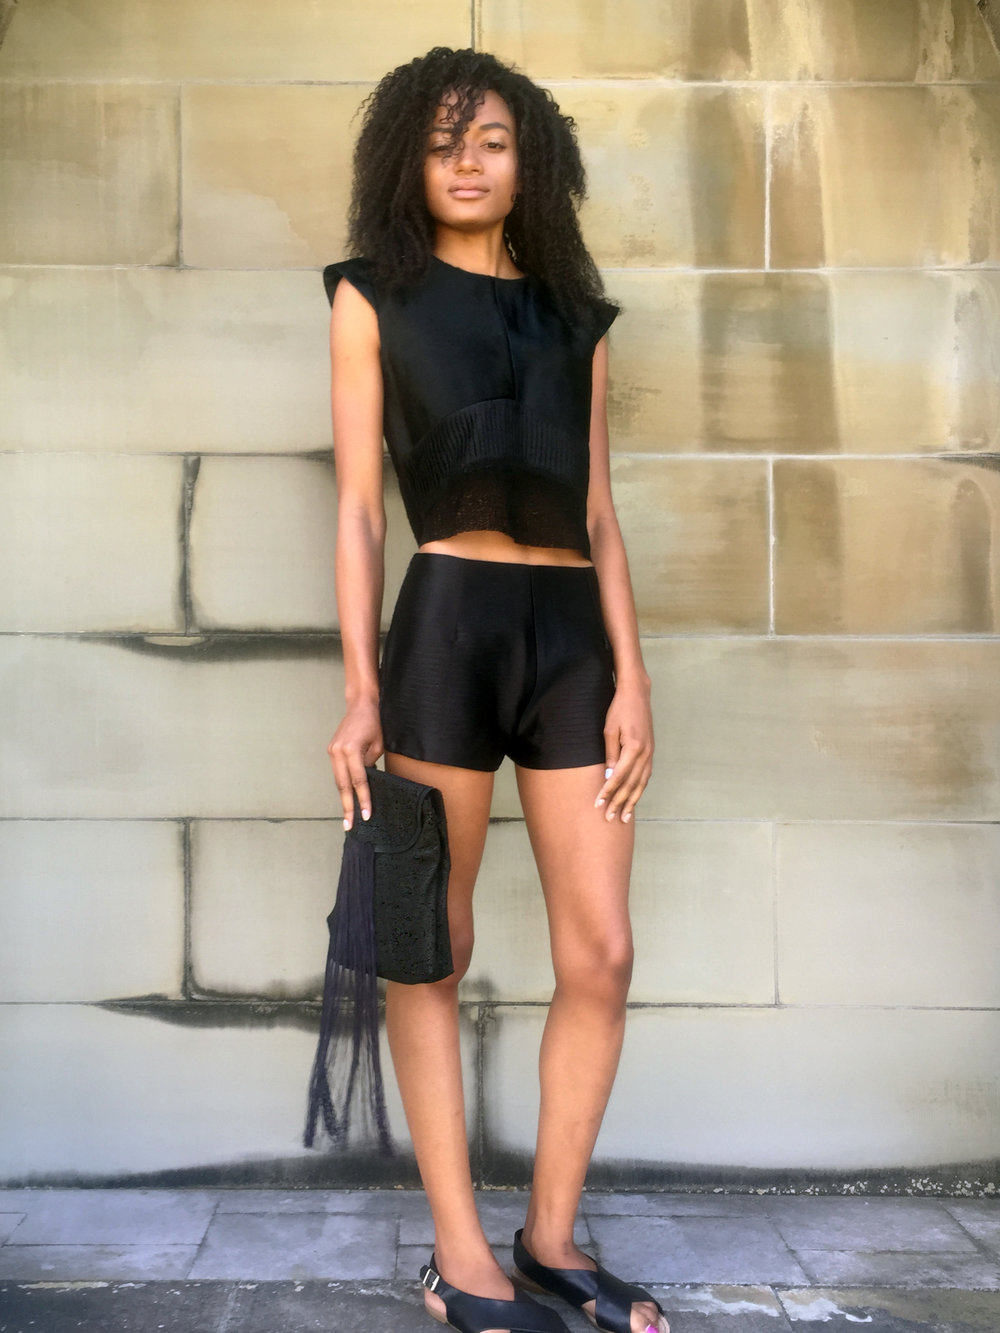 Pony Hair, Crystal-Pleat Silk, & Laser-Cut Leather Crop Top + Wave Pleat Short + Laser-Cut Leather & Fringe Clutch